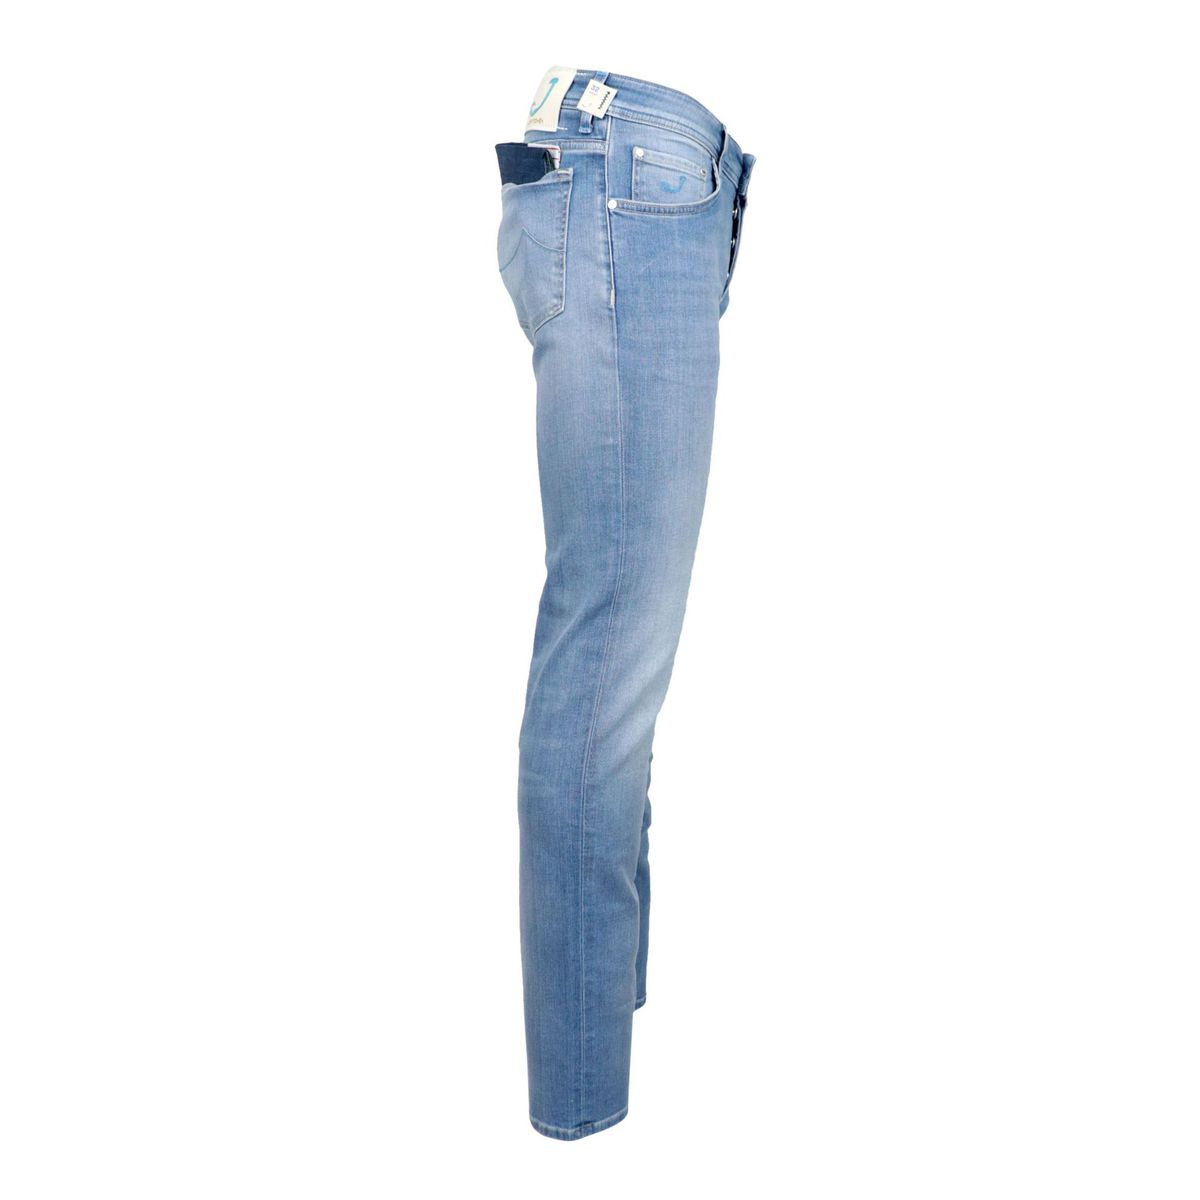 5-pocket slim jeans in light stretch denim Light denim Jacob Cohen